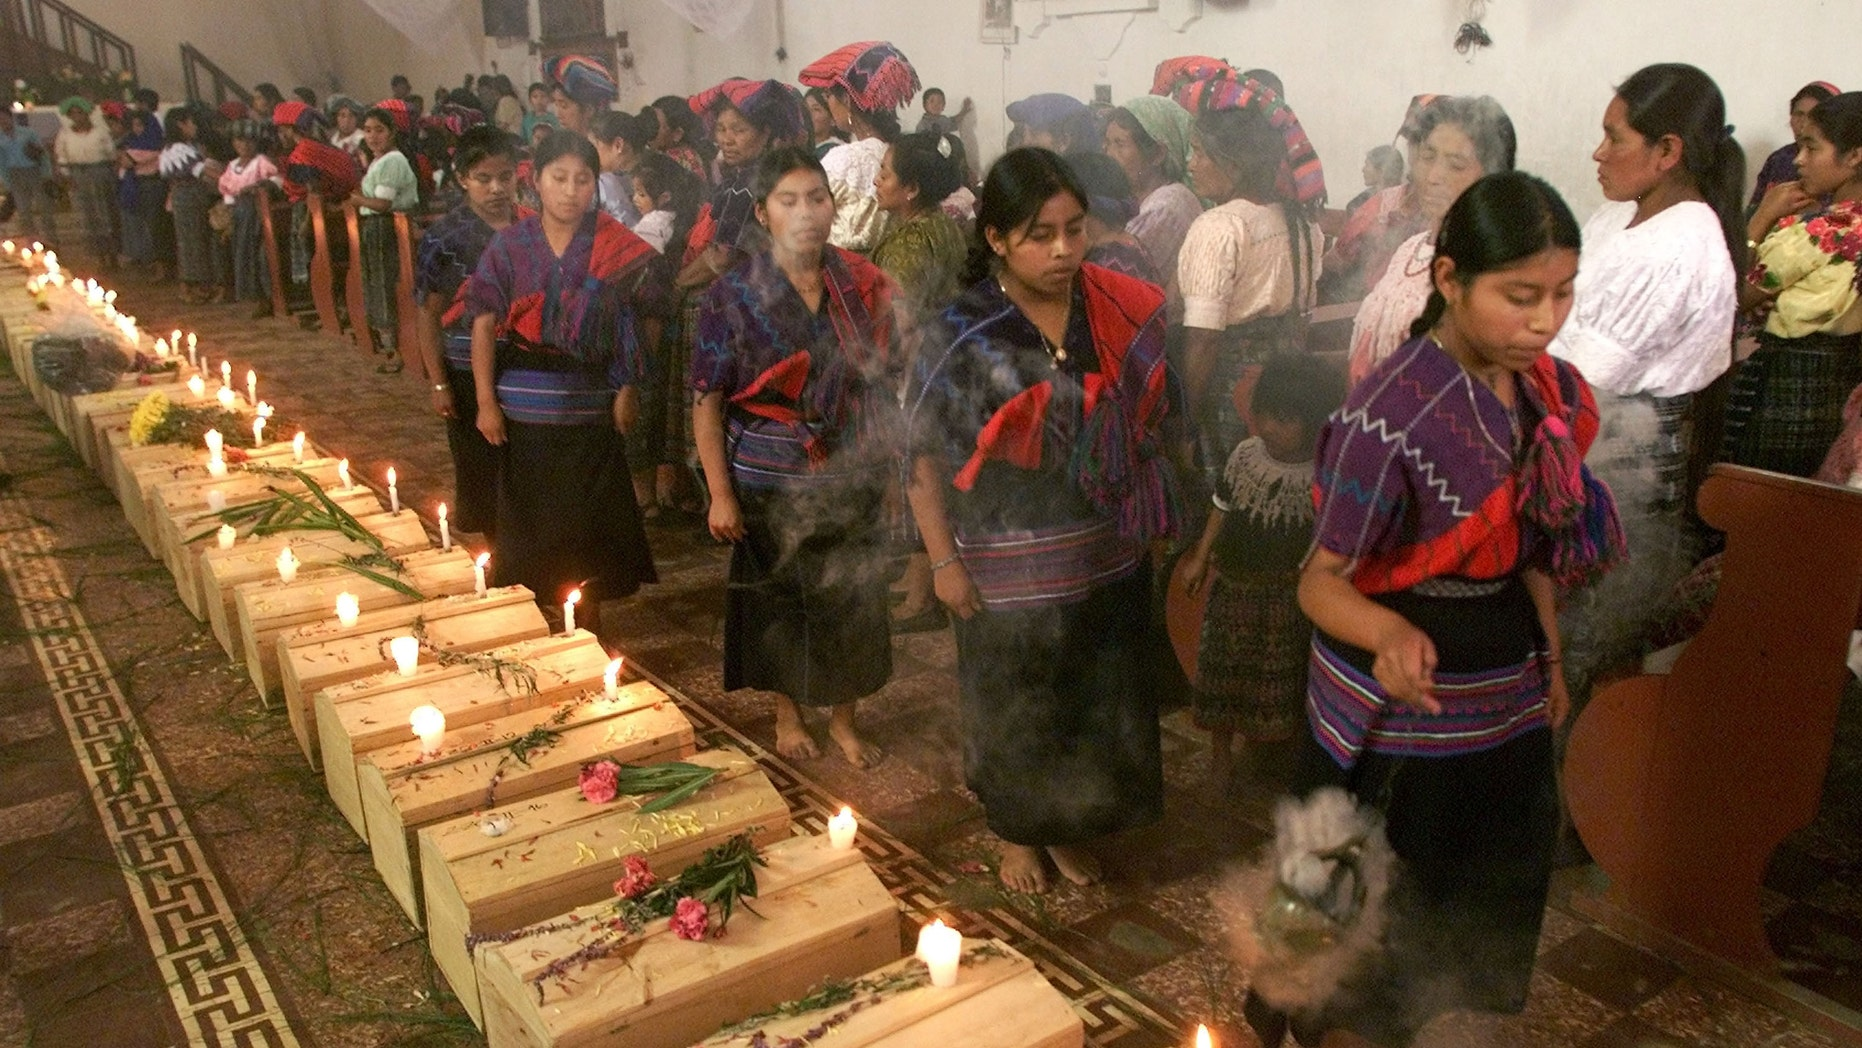 391523 03: Guatemalan Mayan Quiche Indian women dance and burn incense around 41 coffins of victims, found in a 1980''s clandestine cemetery, during mass July 5, 2001 in Zacualpa, Quiche, 150 miles northwest of Guatemala''s capital. According to the Guatemalan Anthropology Forensic Foundation, the cemetery is just one of 669 that has resulted from a 36-year civil war that left 200,000 missing people in the country. (Photo by Andrea Nieto/Getty Images)